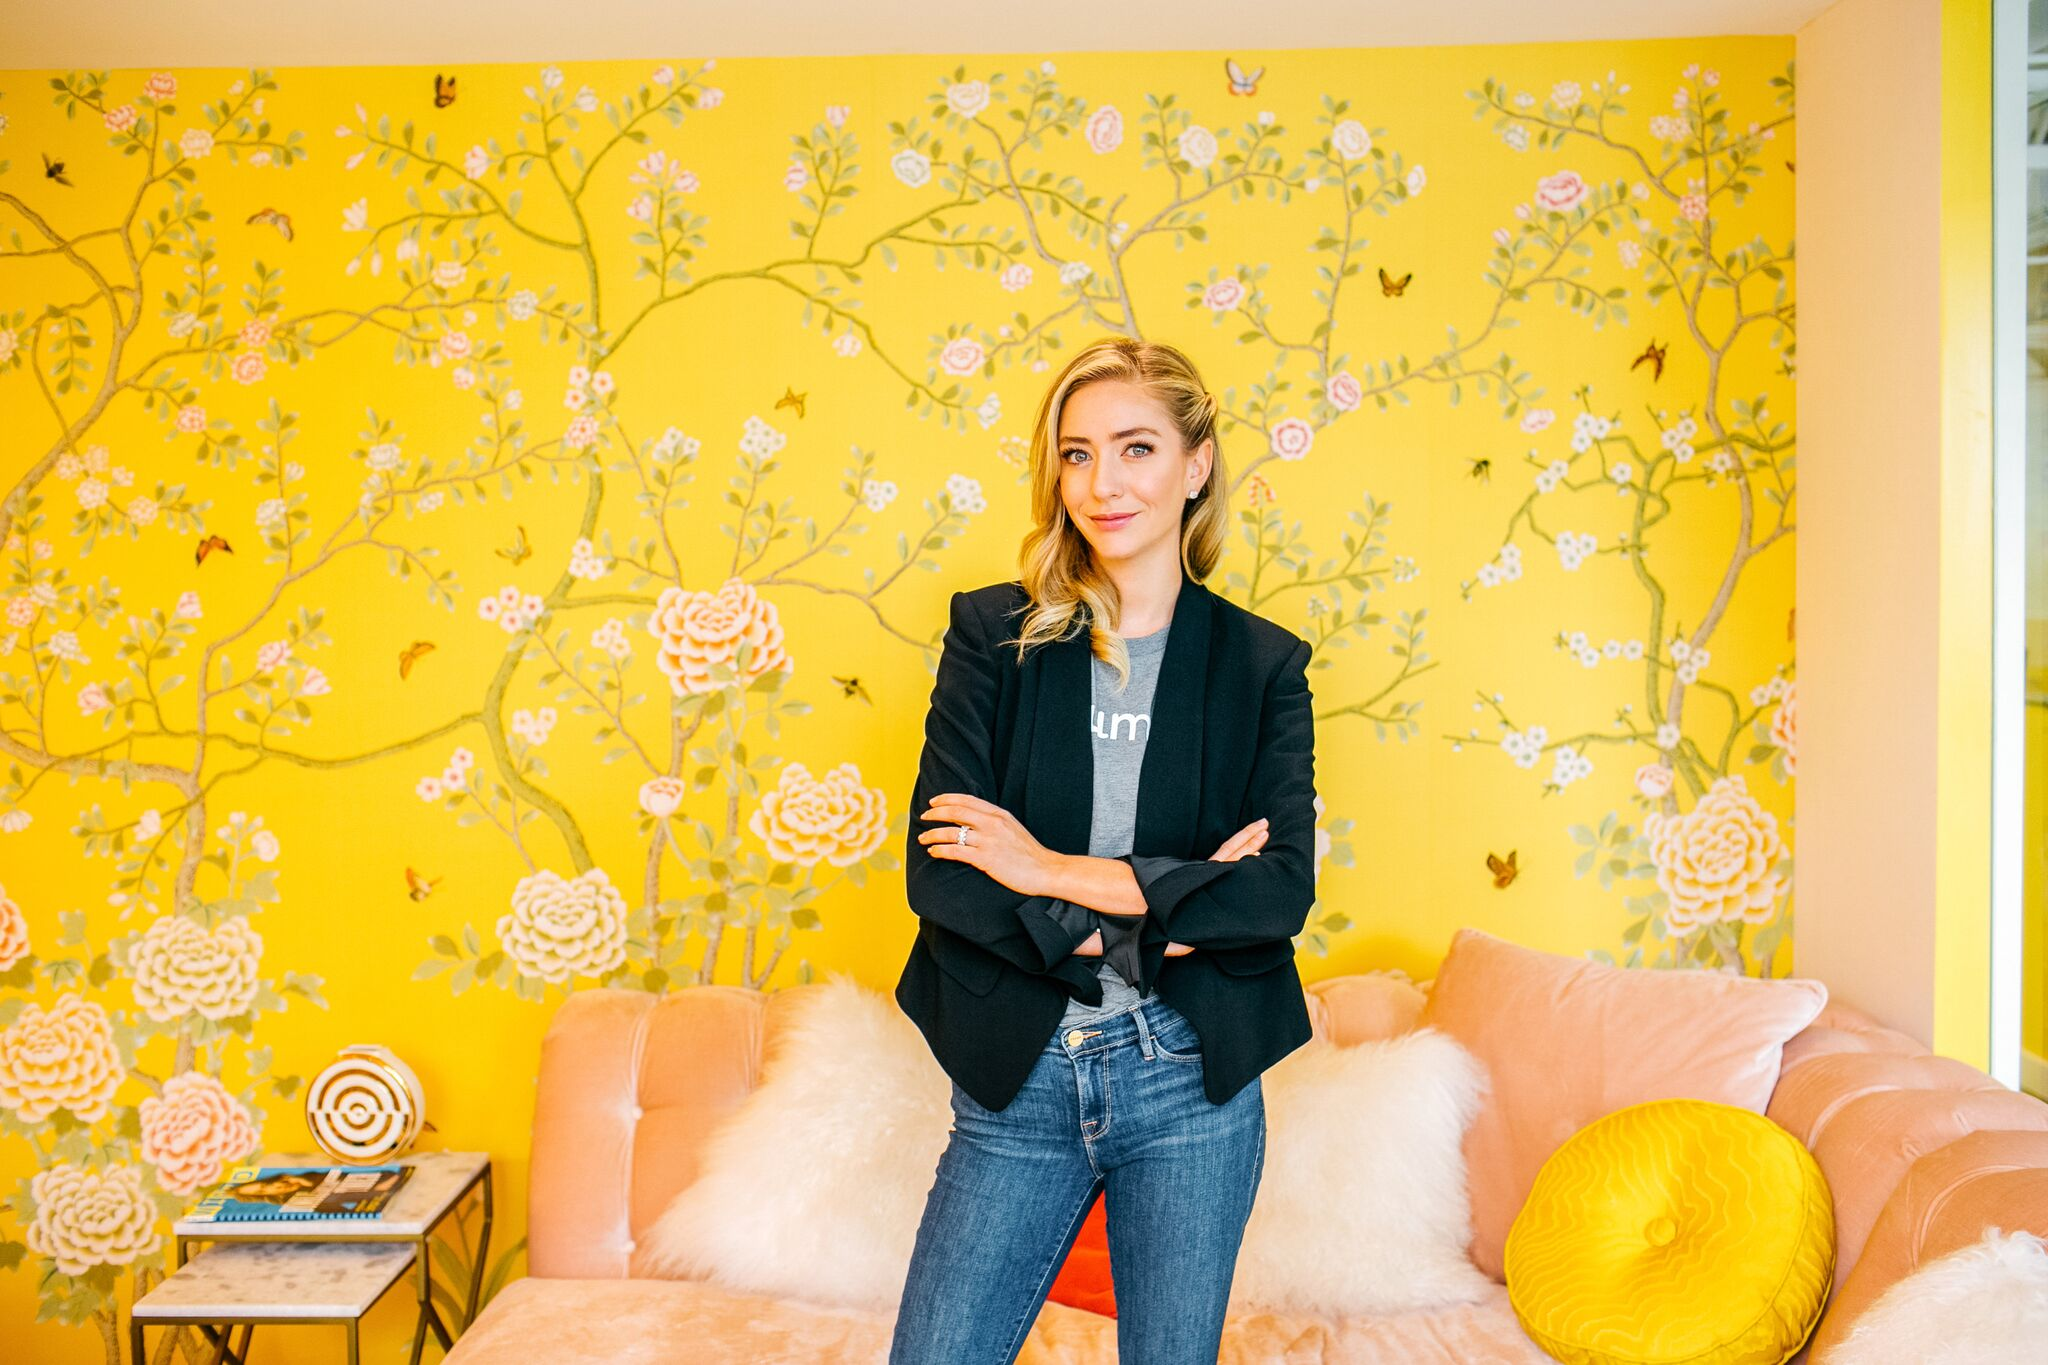 Whitney Wolfe Herd Discusses Real-World Change as Sexual Image Law is Introduced